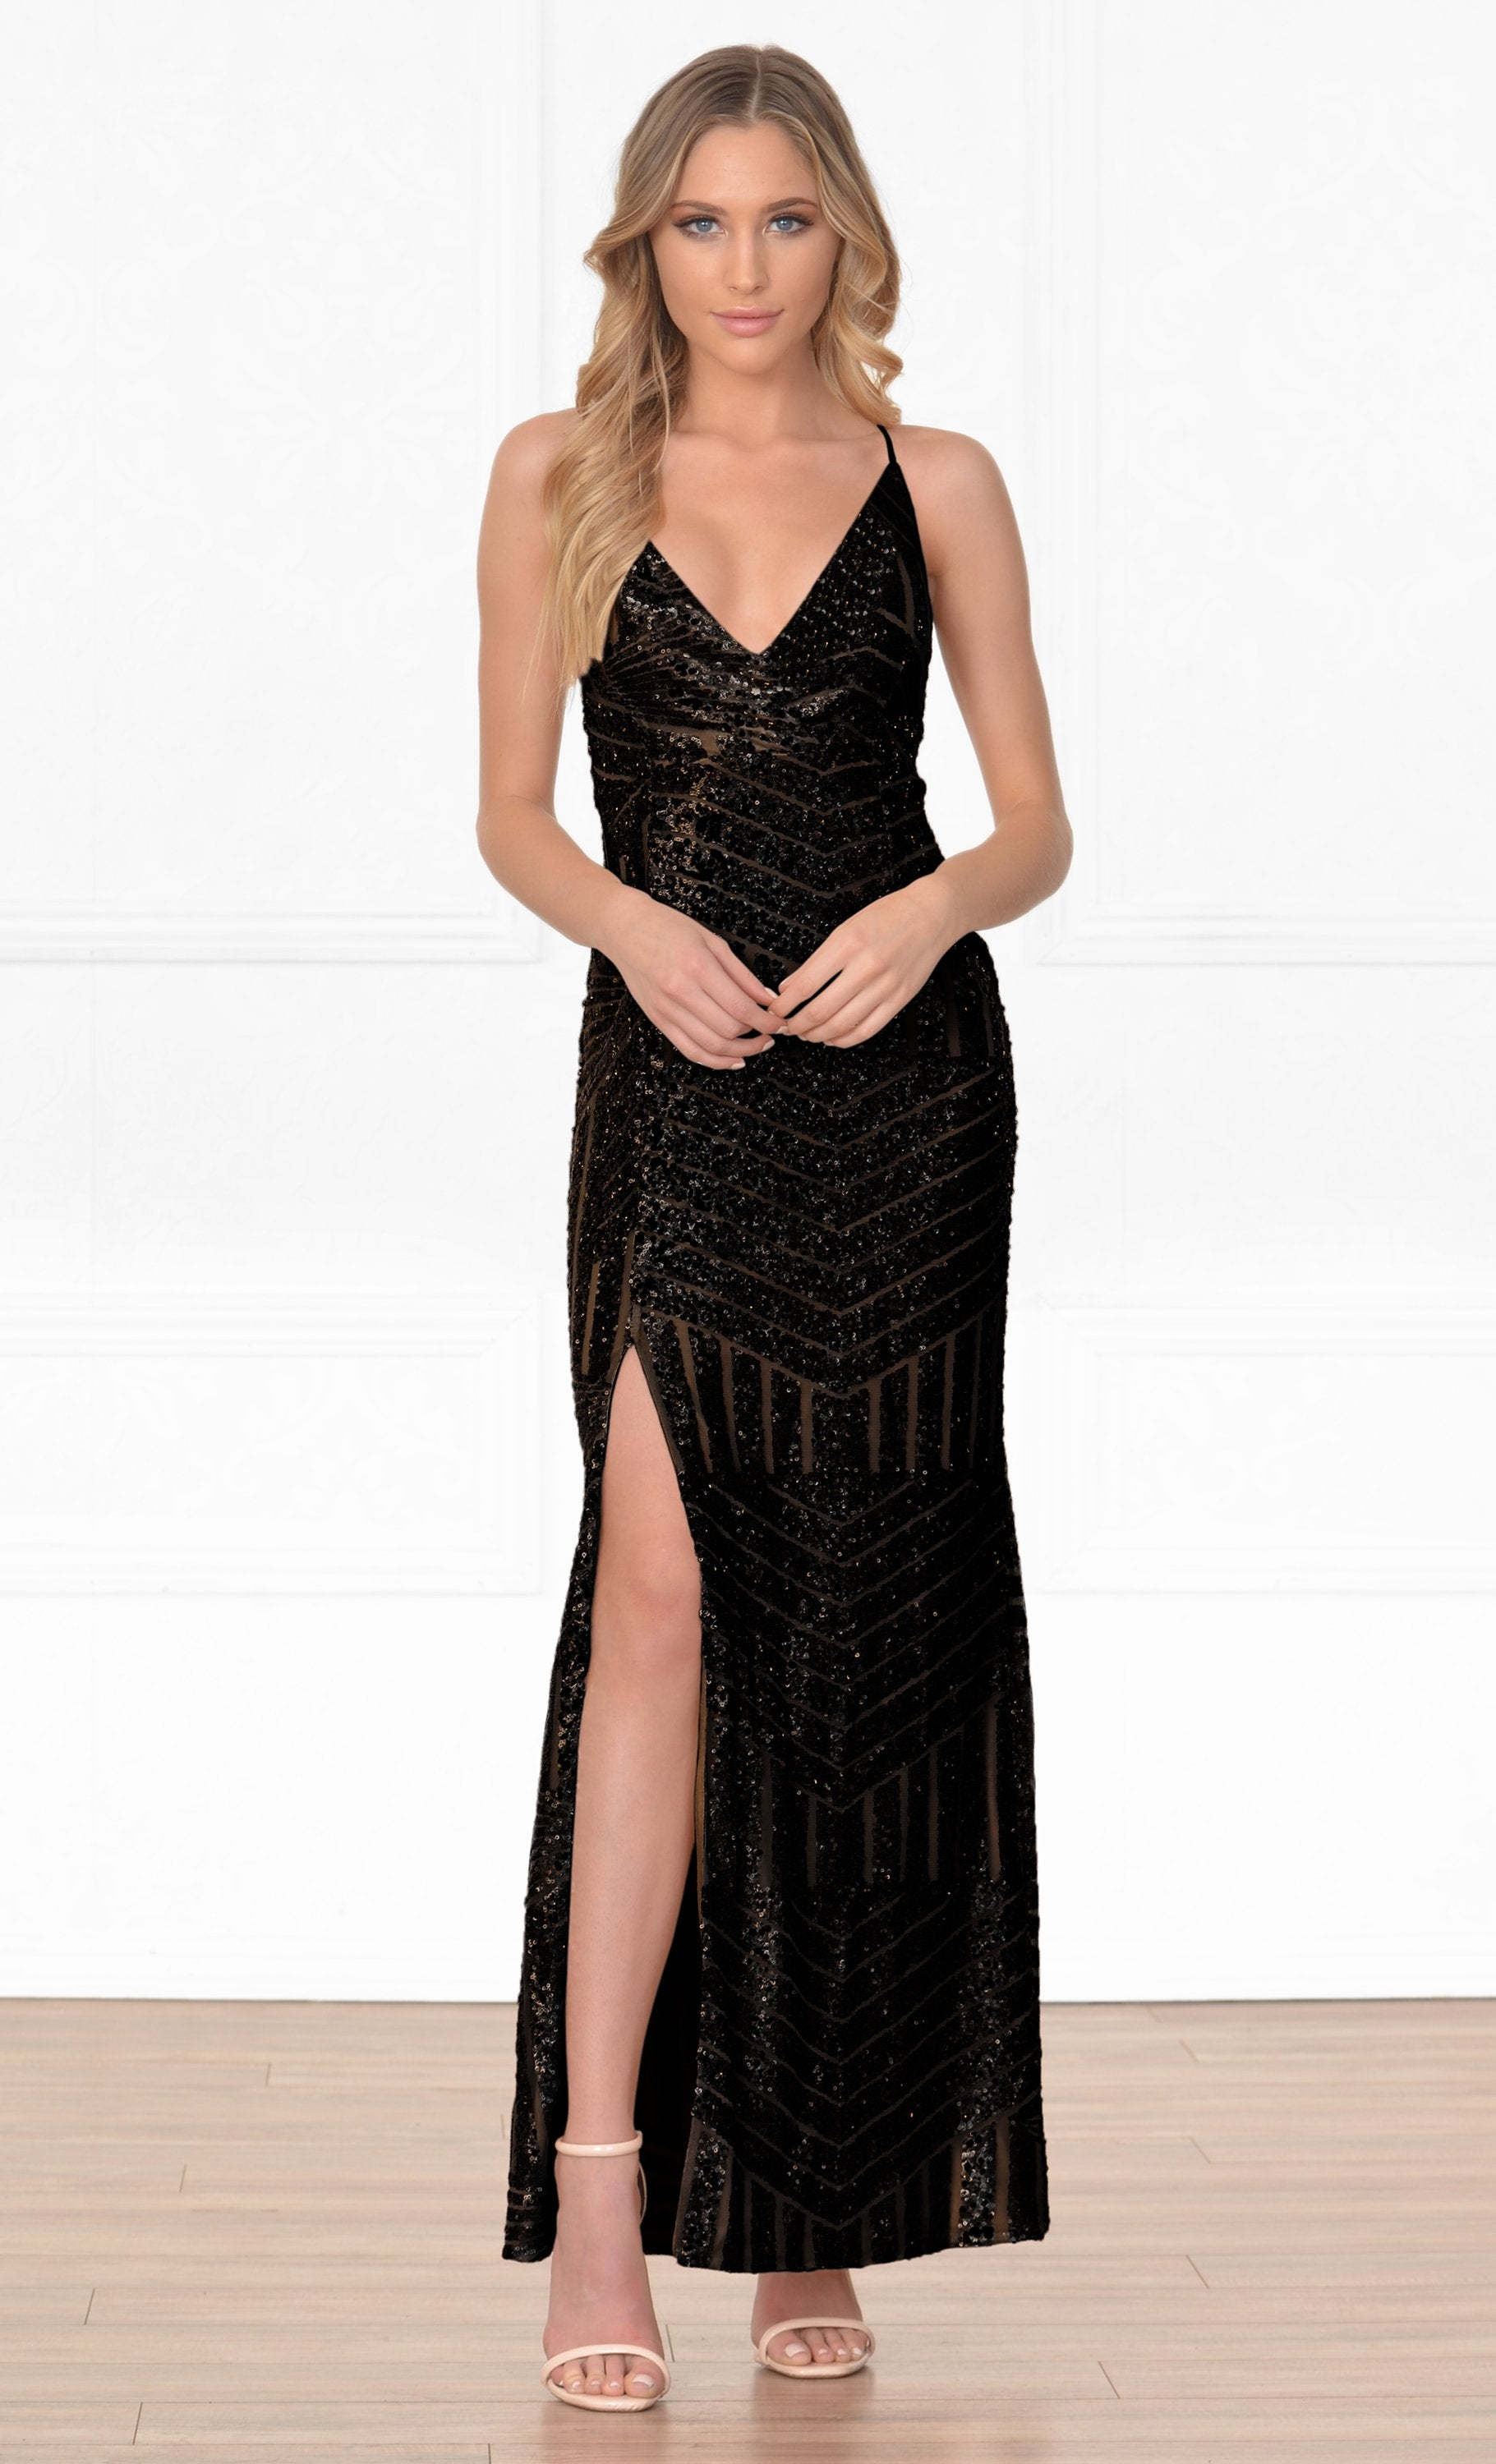 Indie XO My Moment To Shine Black Geometric Sequin Sleeveless Spaghetti Strap Cross Wrap V Neck Thigh Slit Maxi Dress